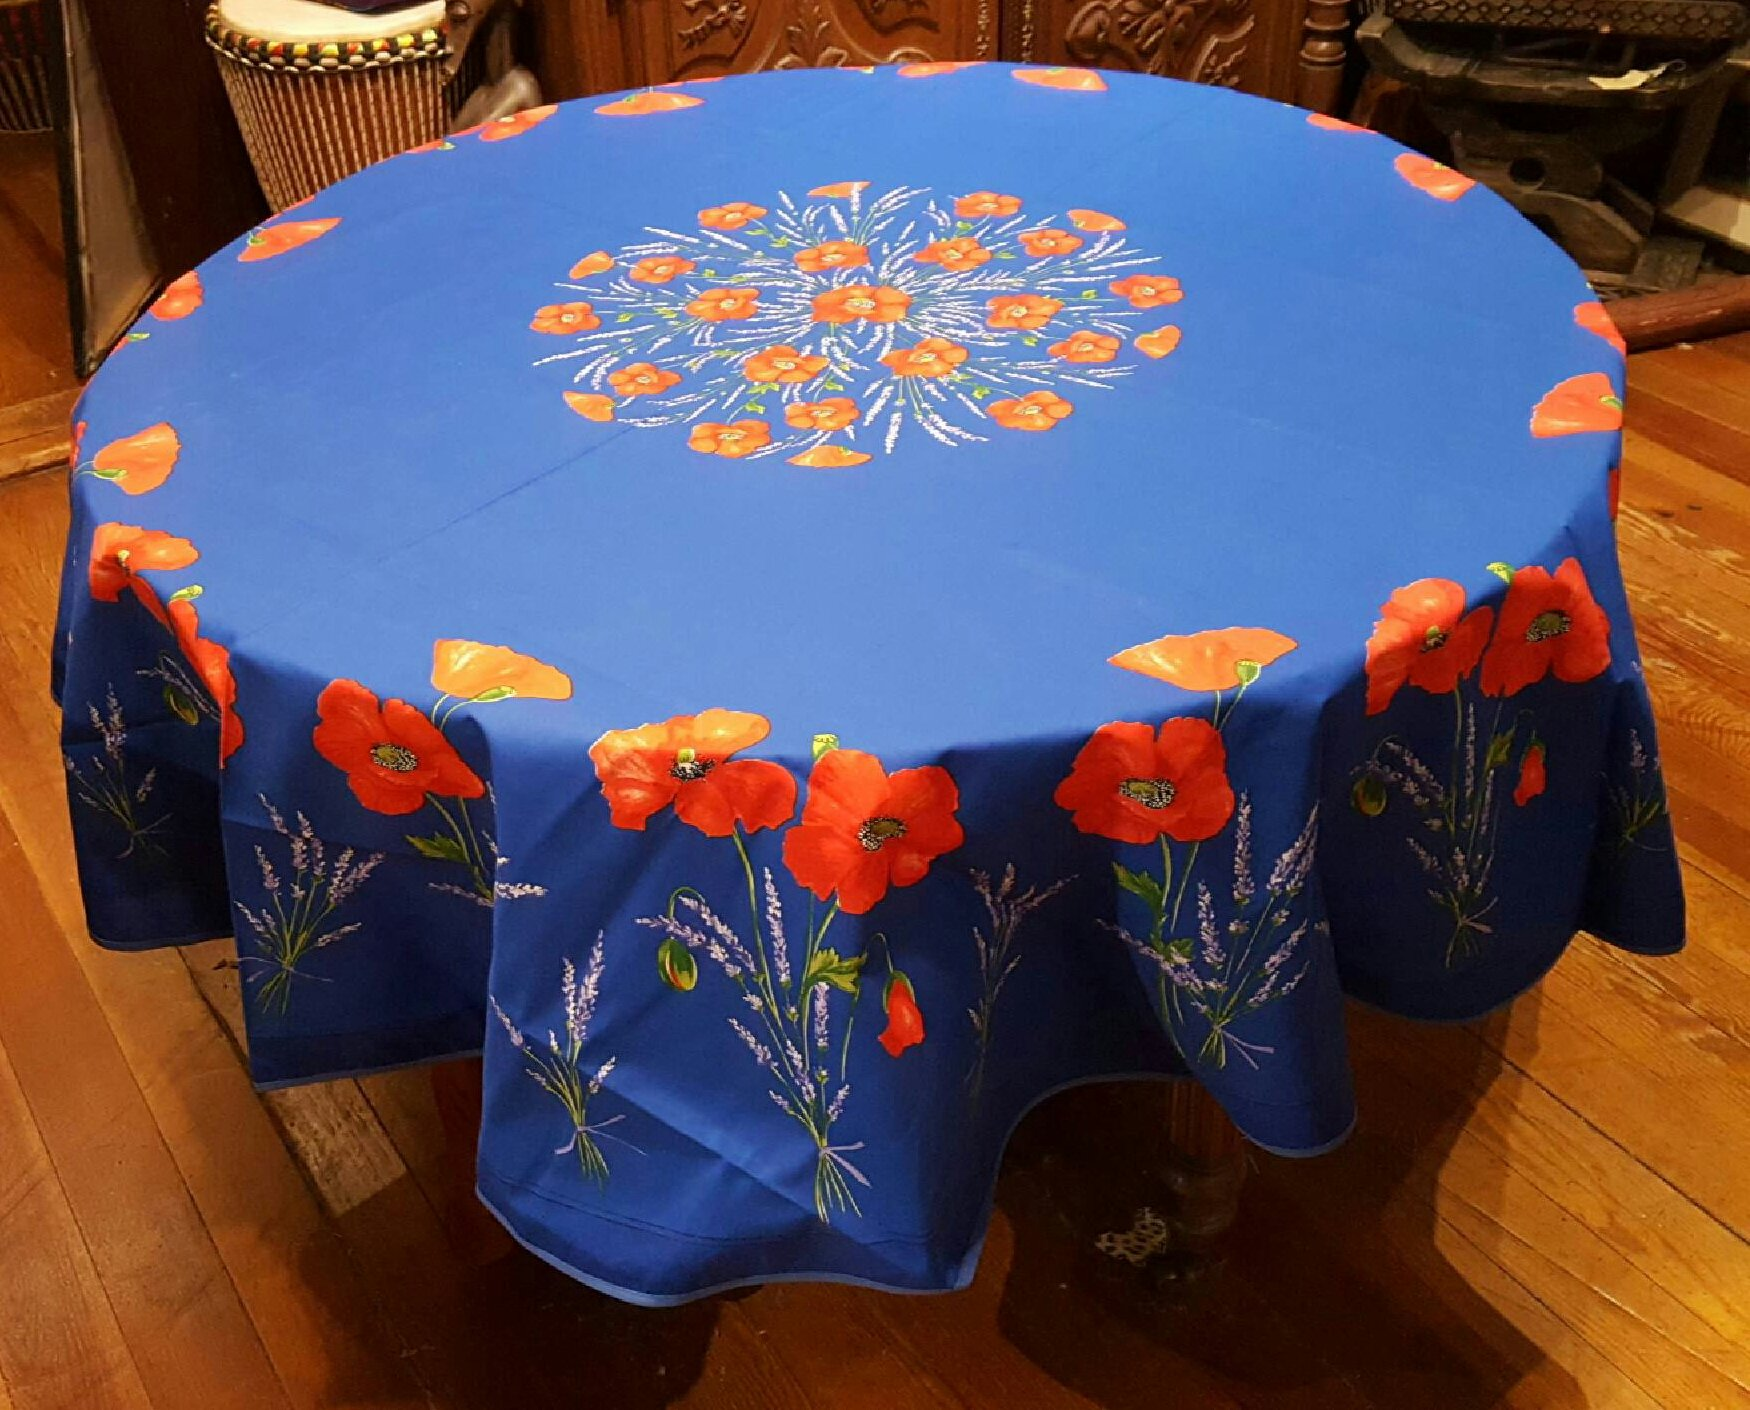 70 French Acrylic-Coated Round Tablecloth Poppy (Blue)